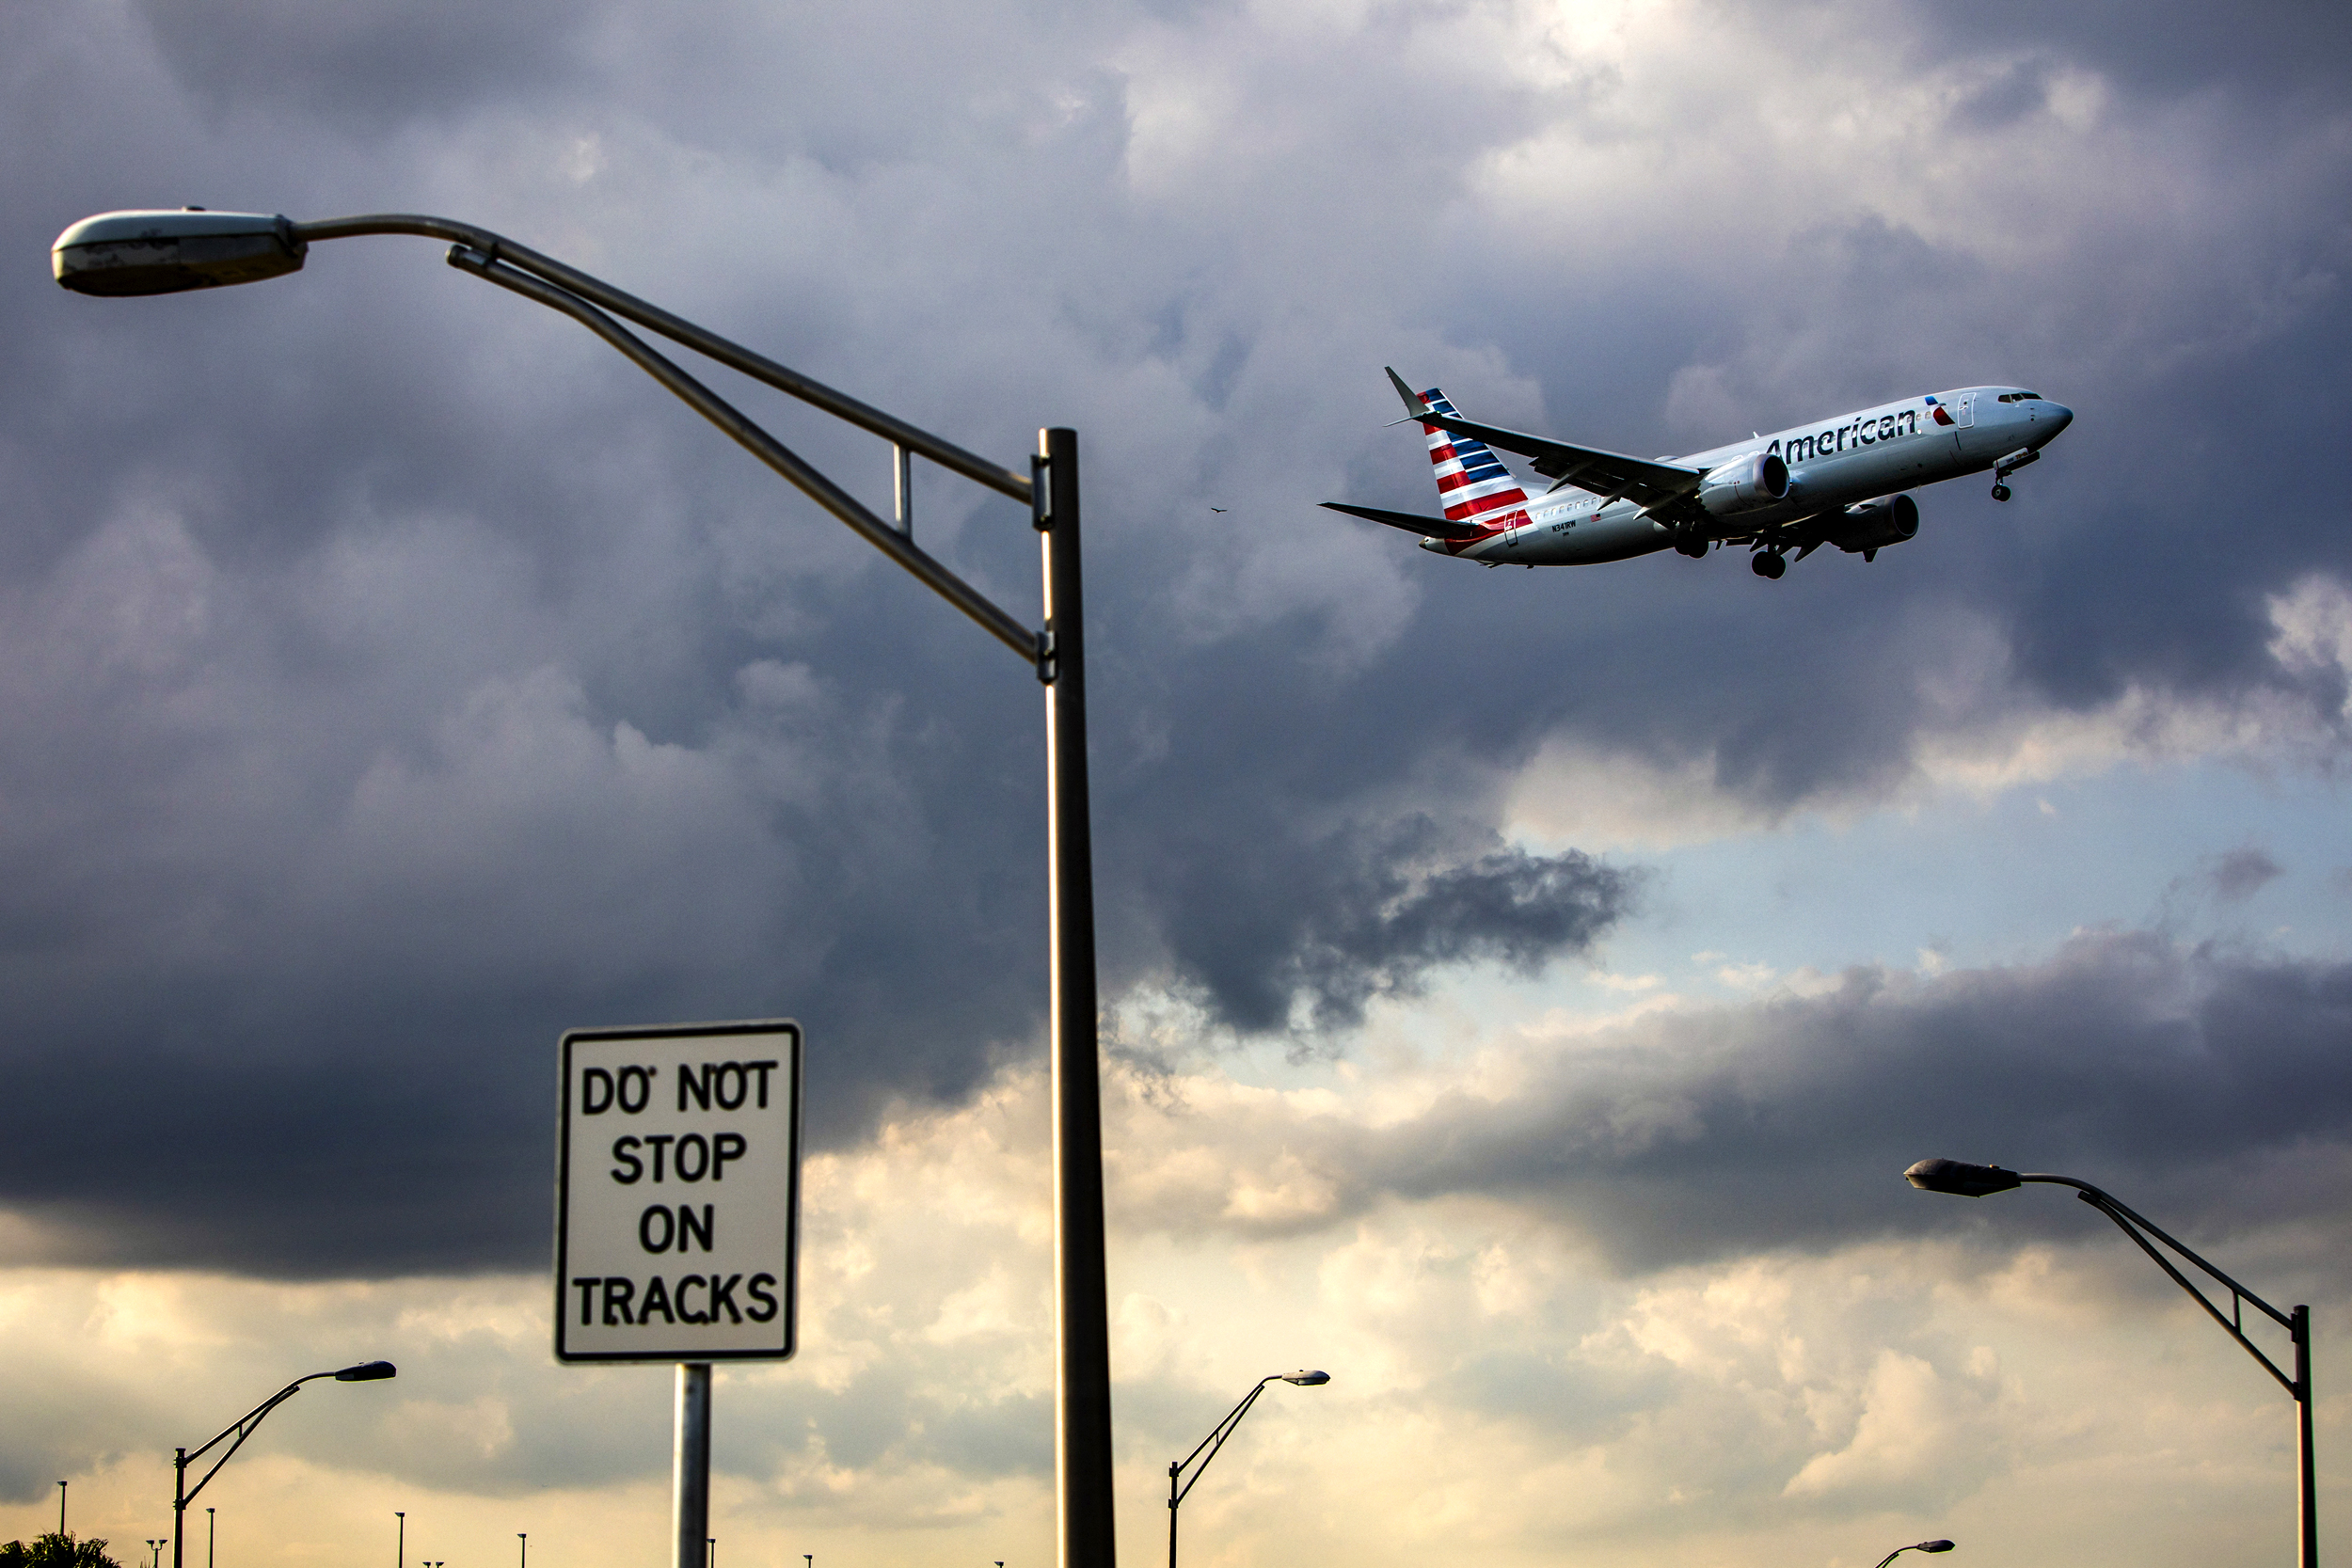 Boeing 737 Max Jets Grounded By Faa Emergency Order